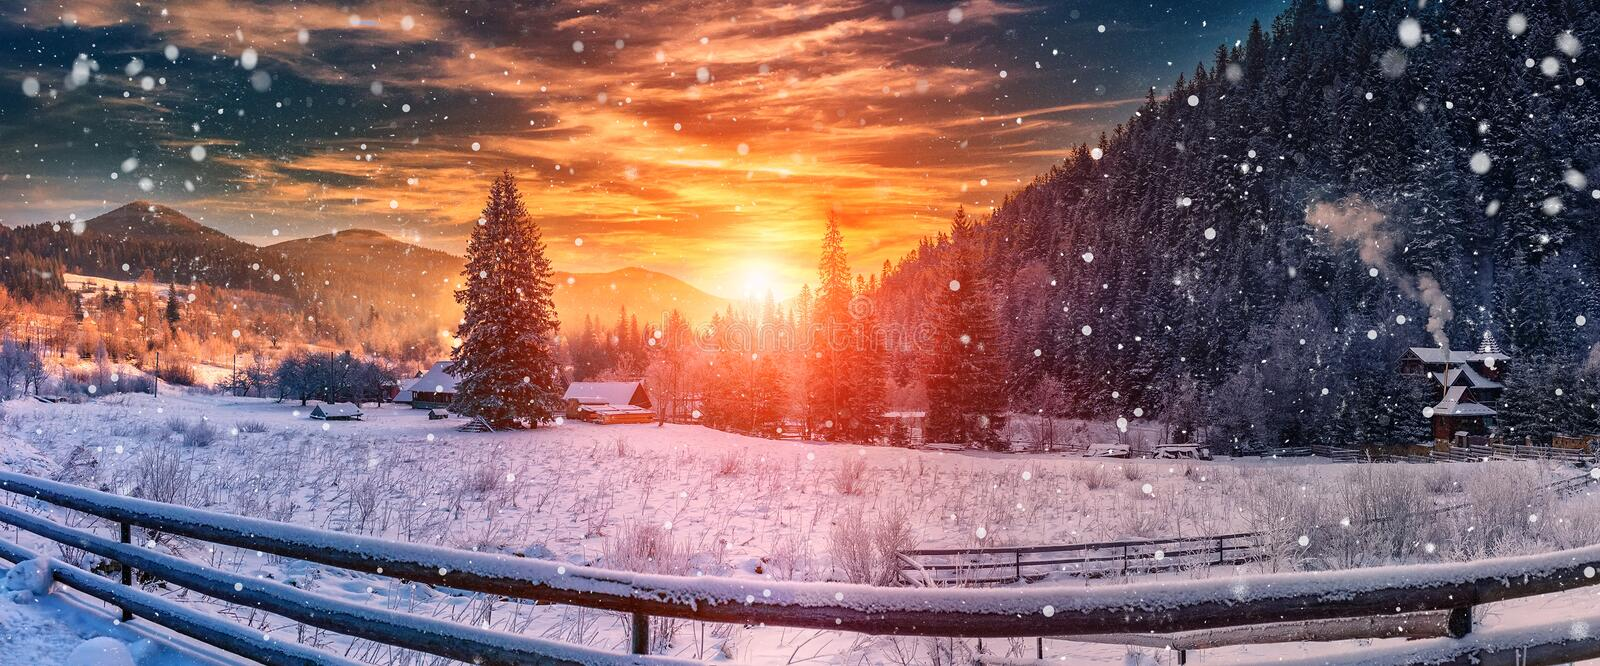 Majestic sunset at winter. wonderful wintry view in mountain villlage stock images